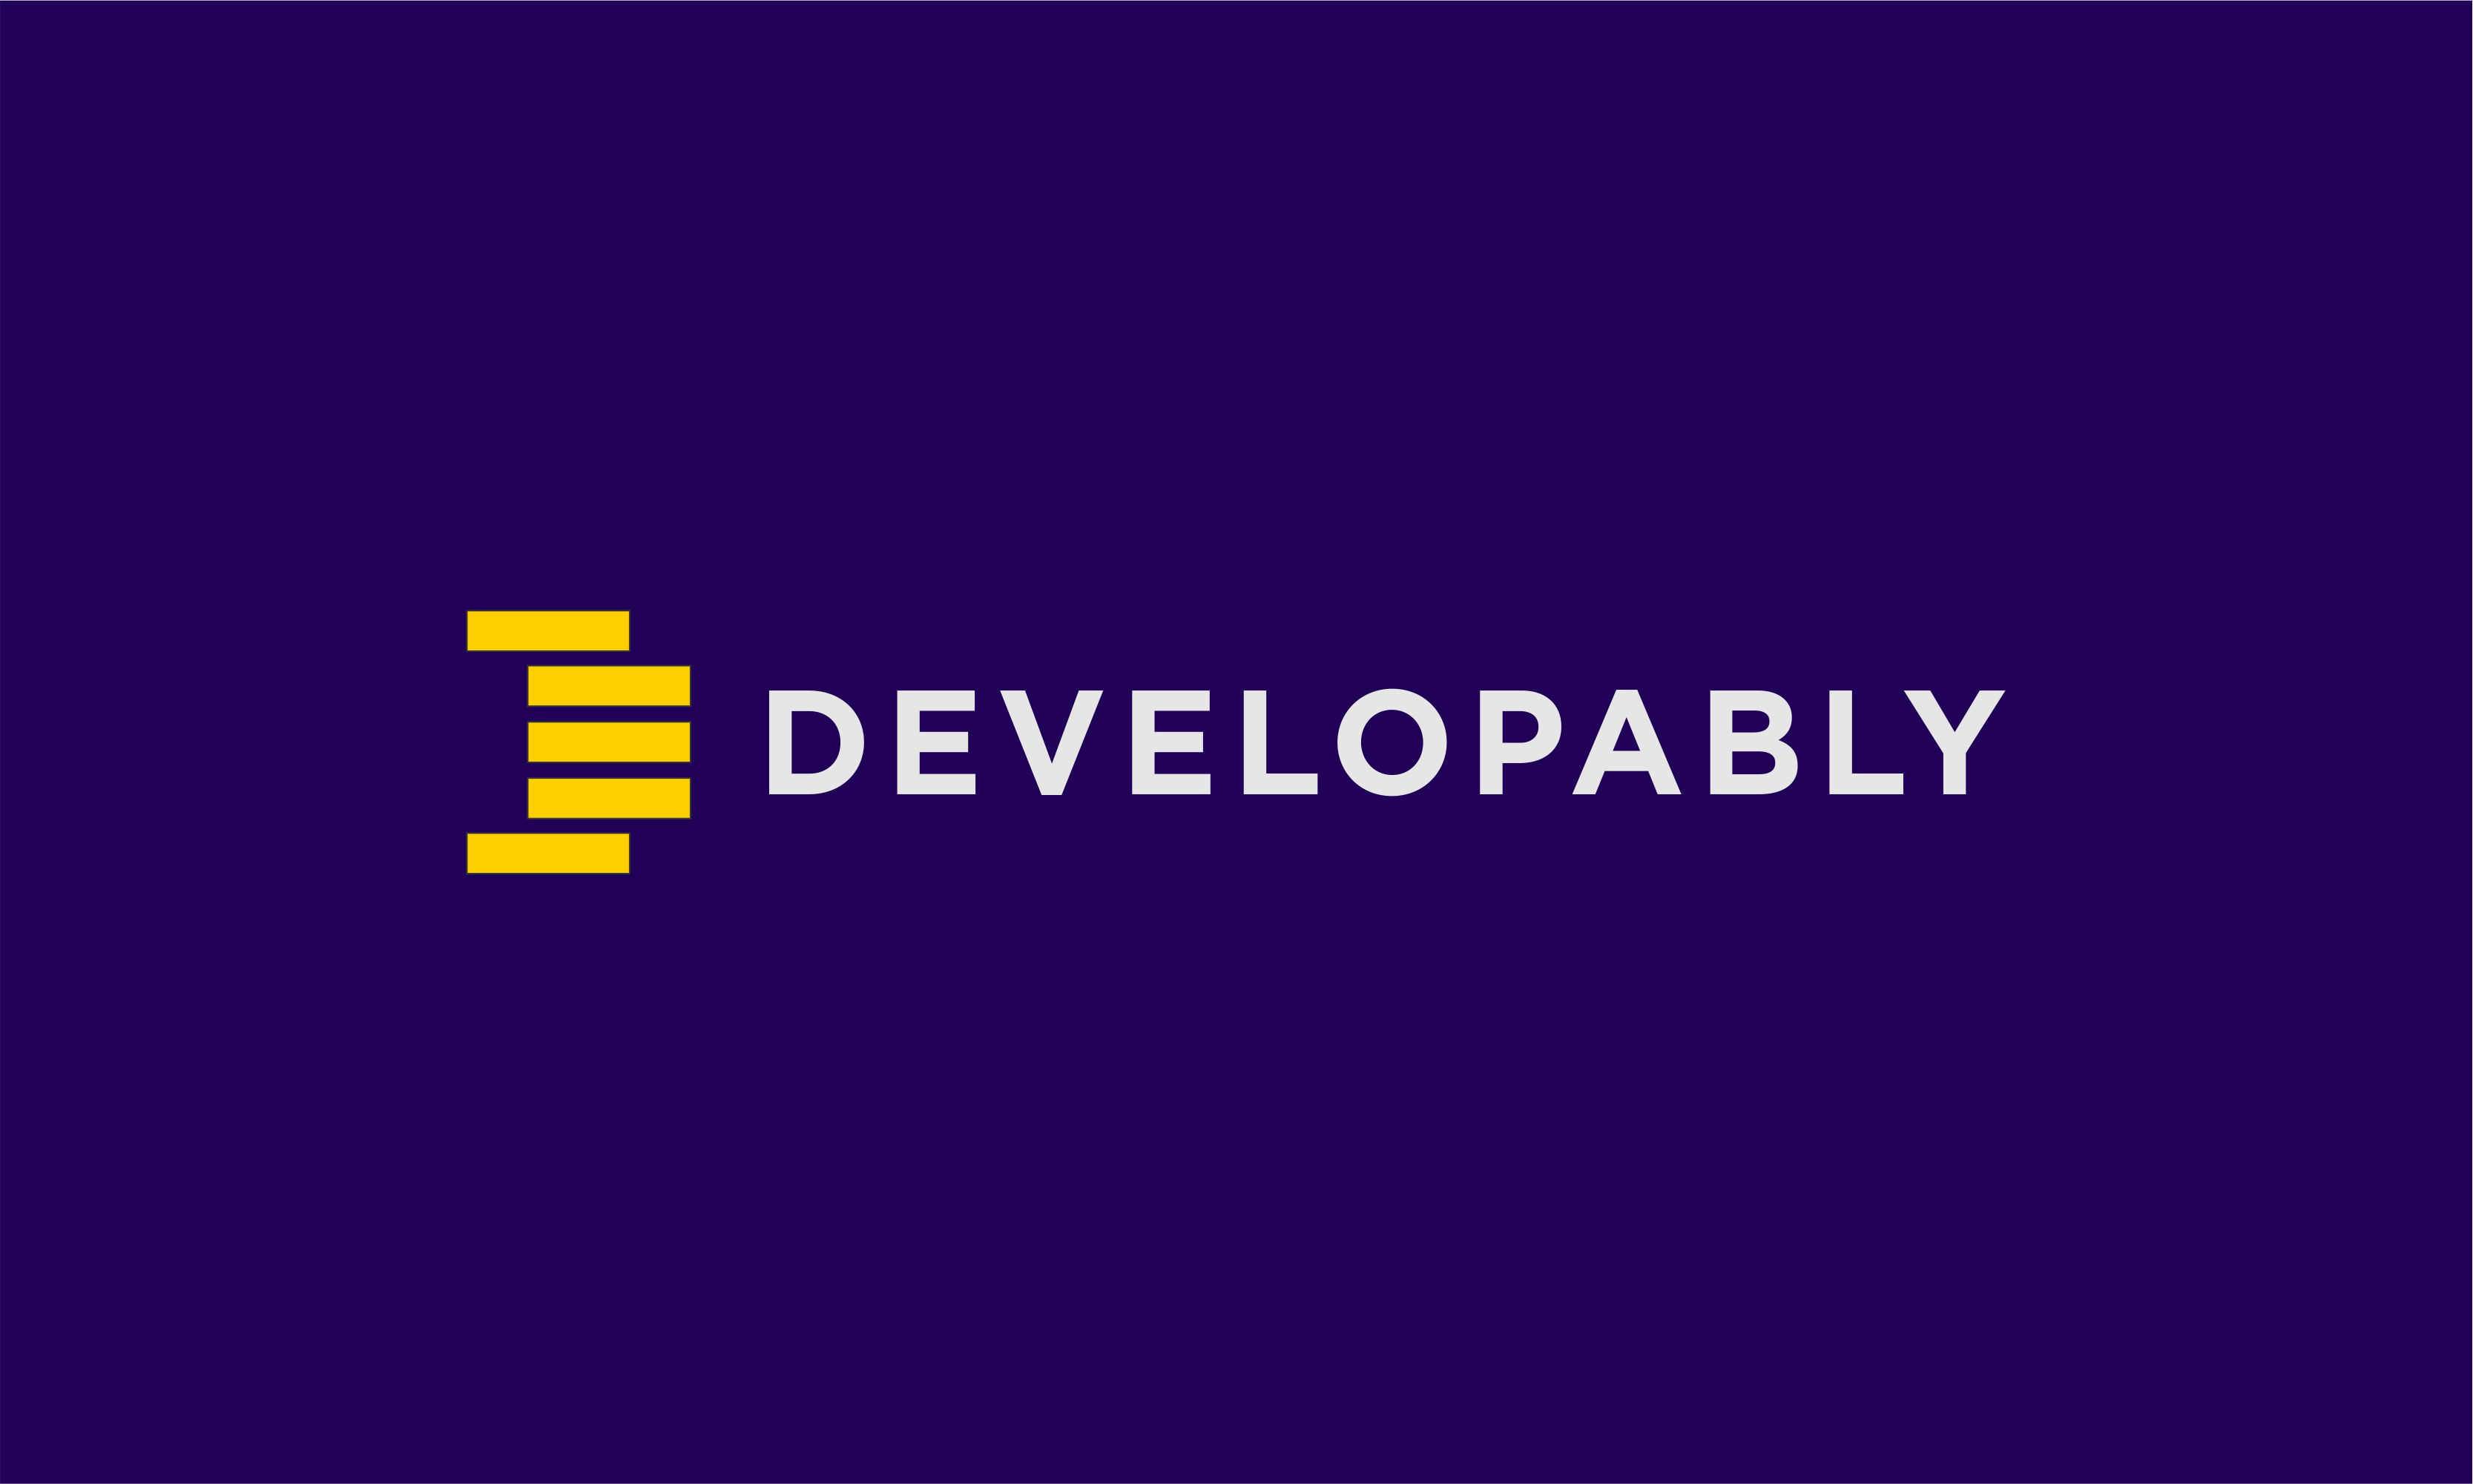 Developably